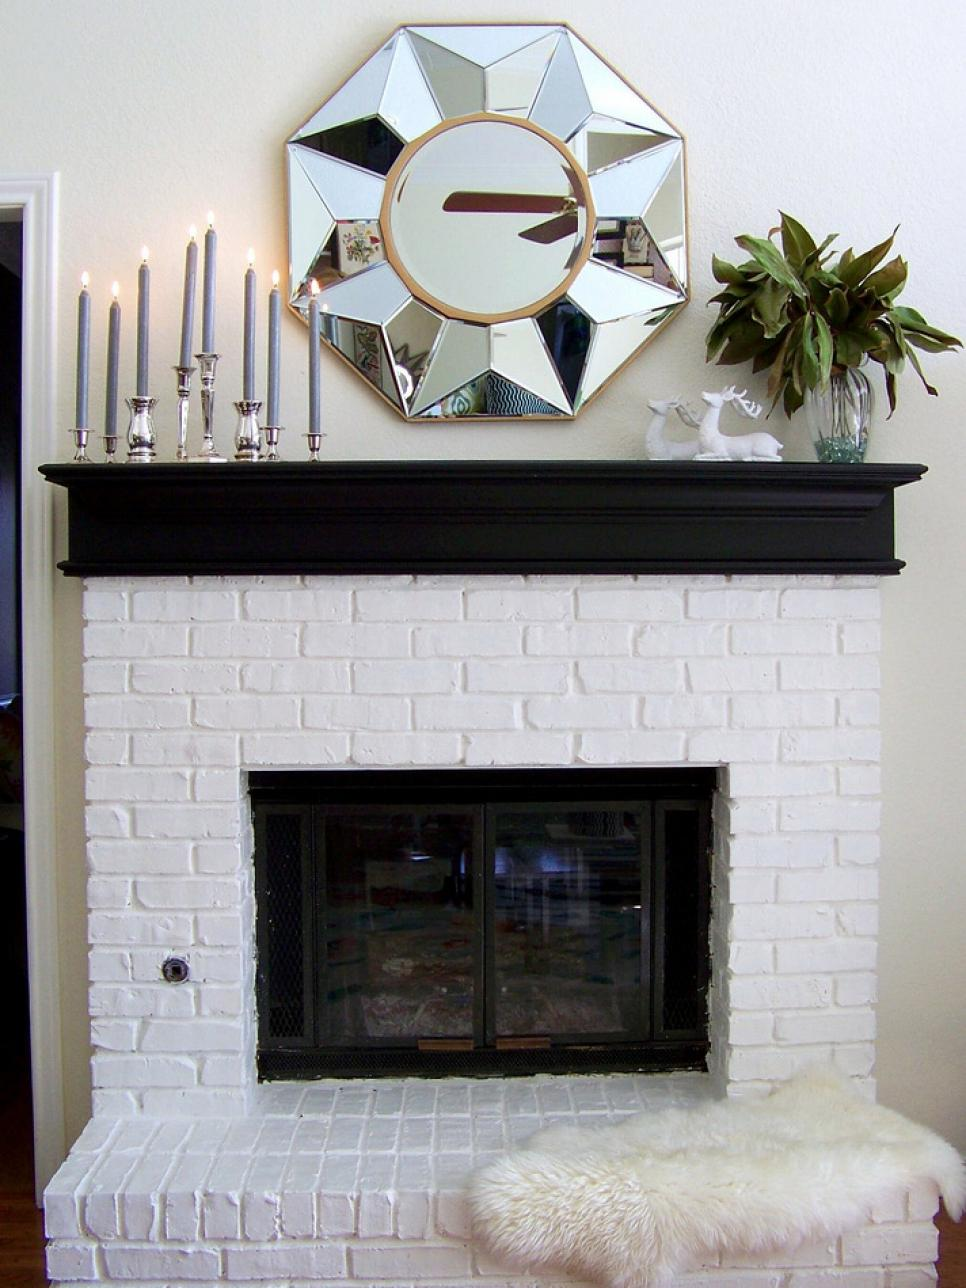 Tips to make fireplace mantel d cor for a wedding day for Fire place mantel ideas